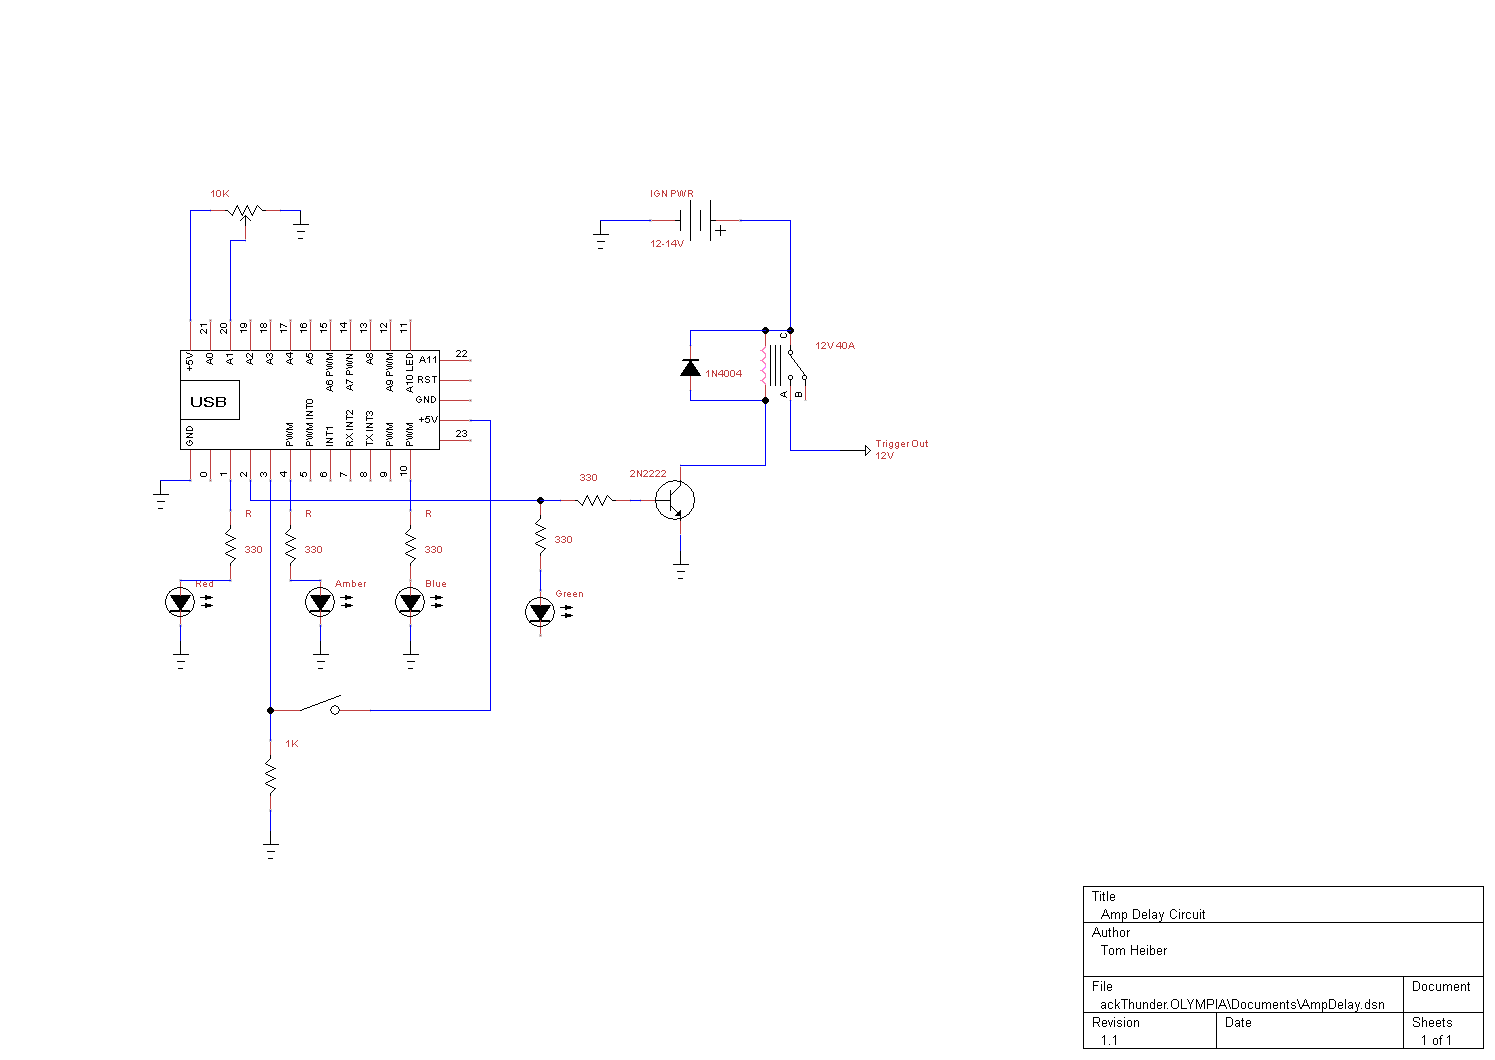 Results Page 241 About Rc Speed Controller Searching Circuits At Monostable Oscillator Circuit 3 Nextgr Smart Amp Delay